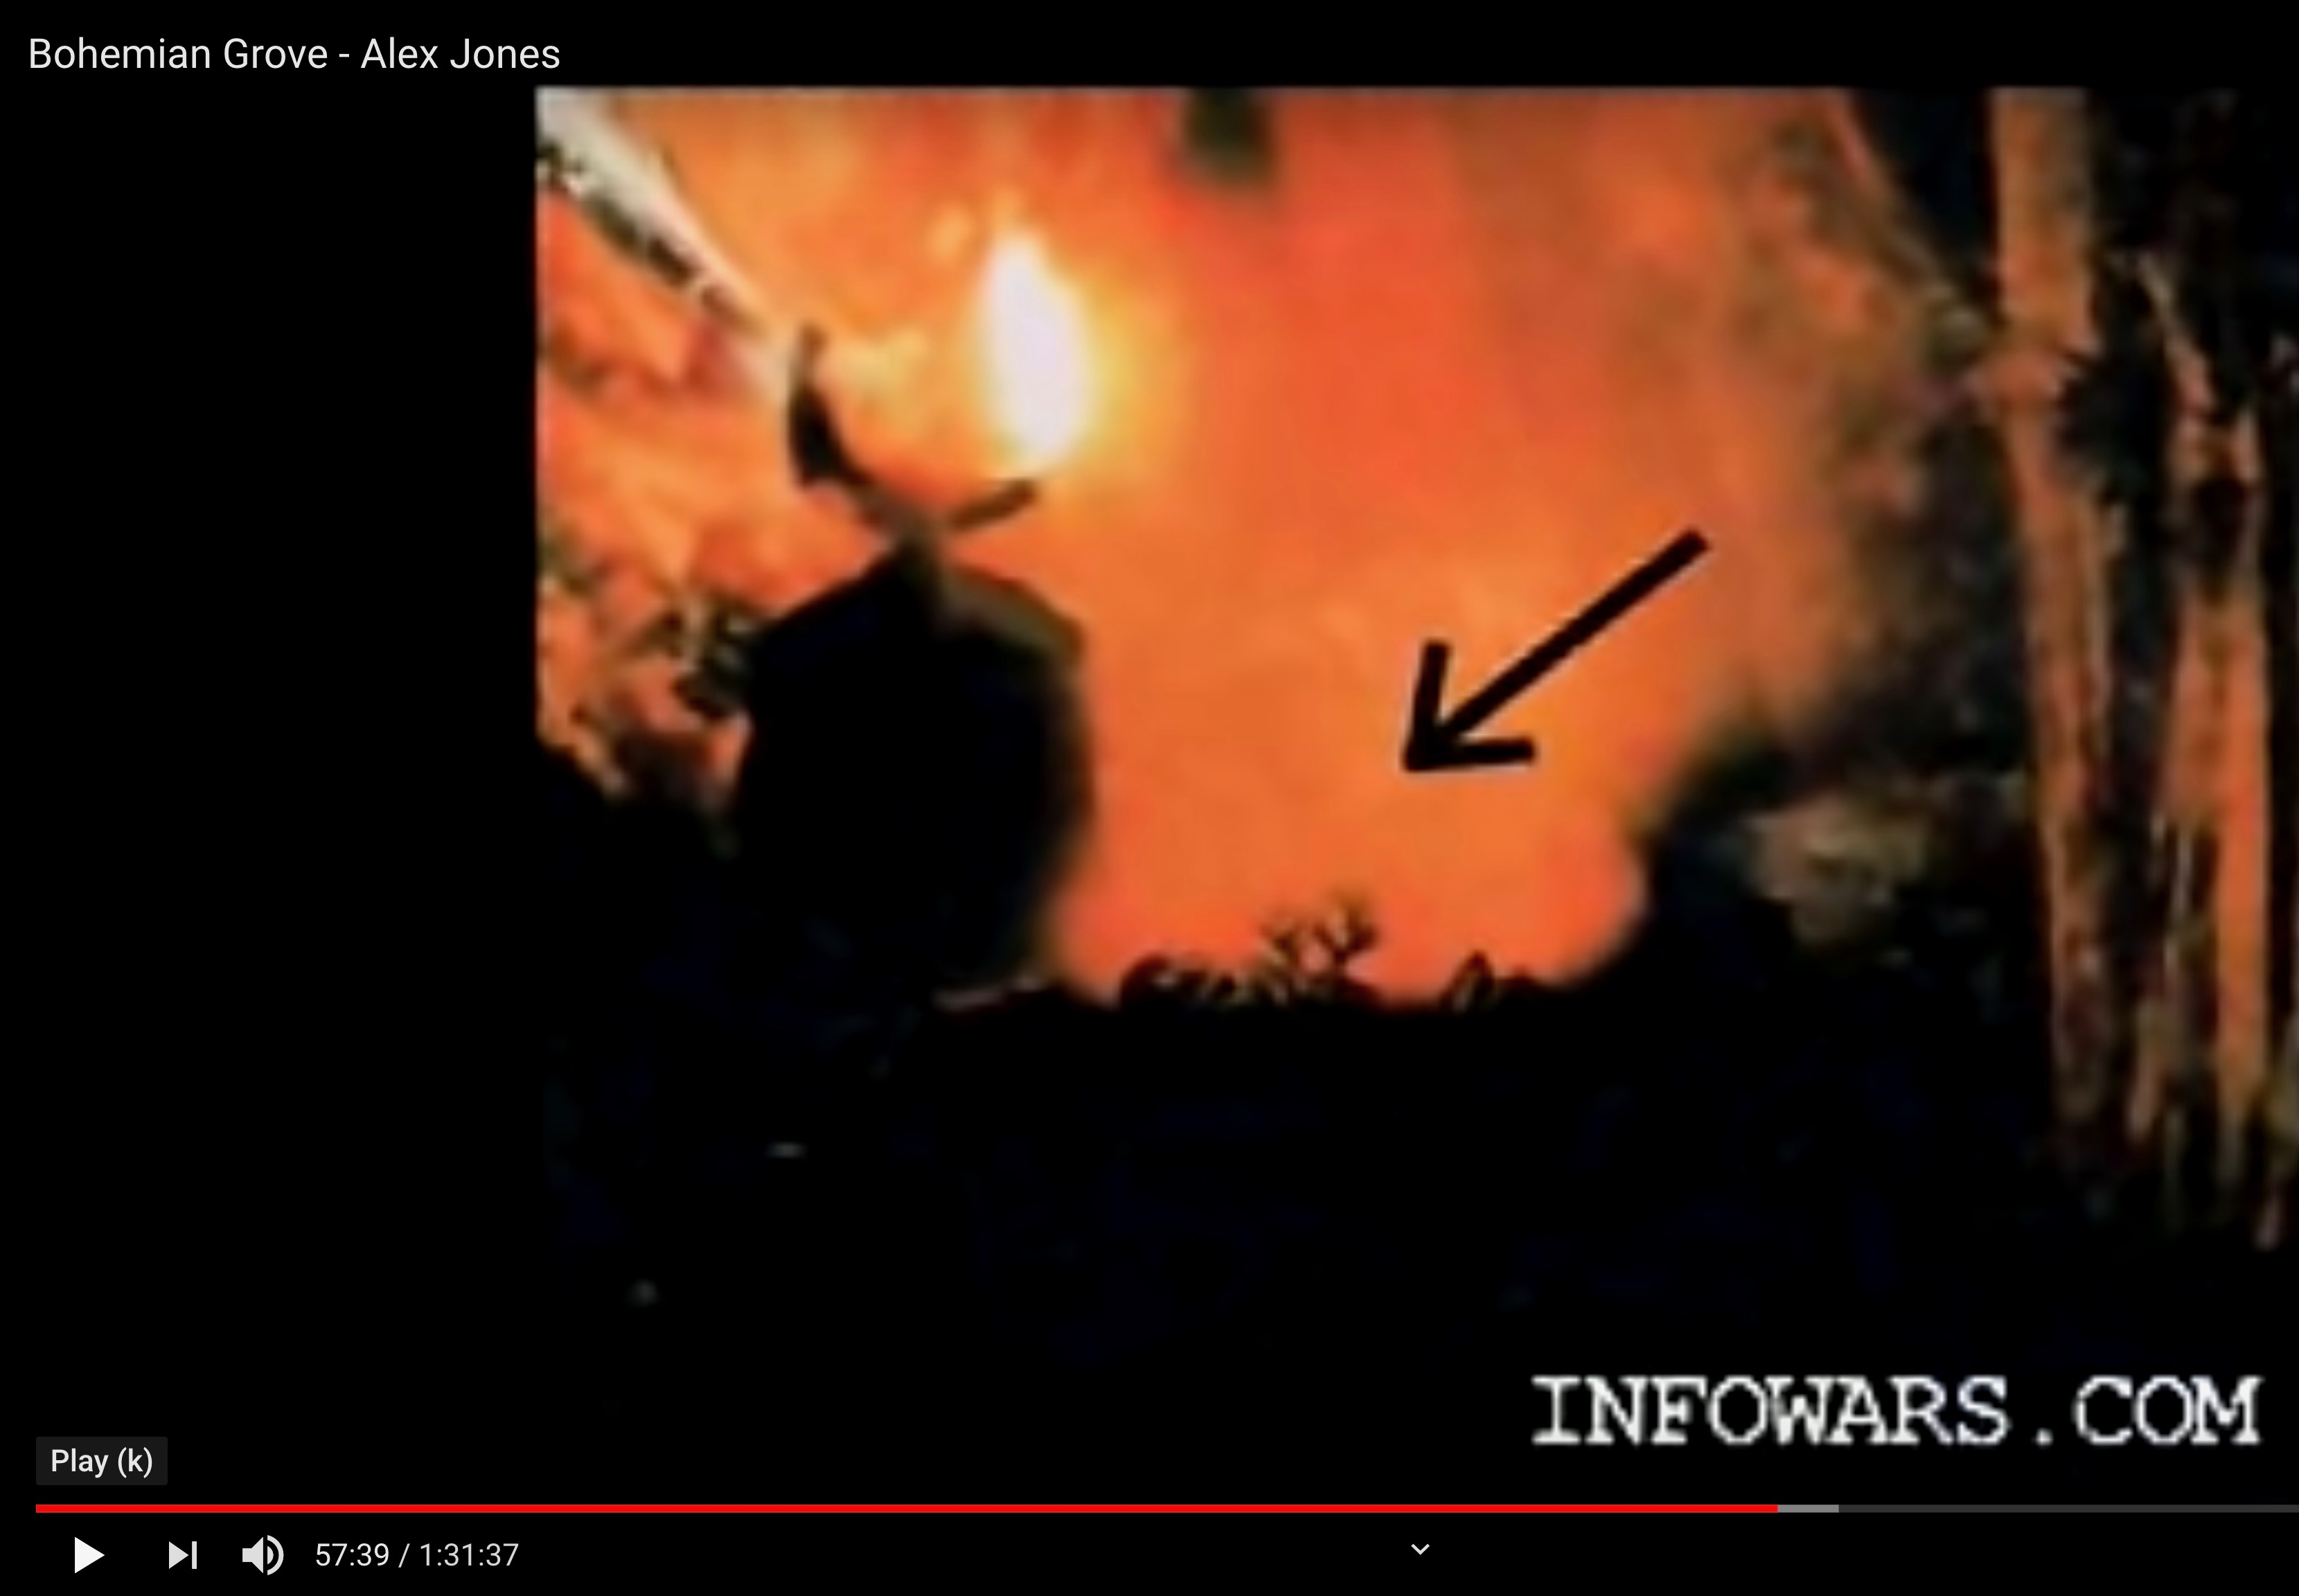 Alex Jones Bohemian Grove 1